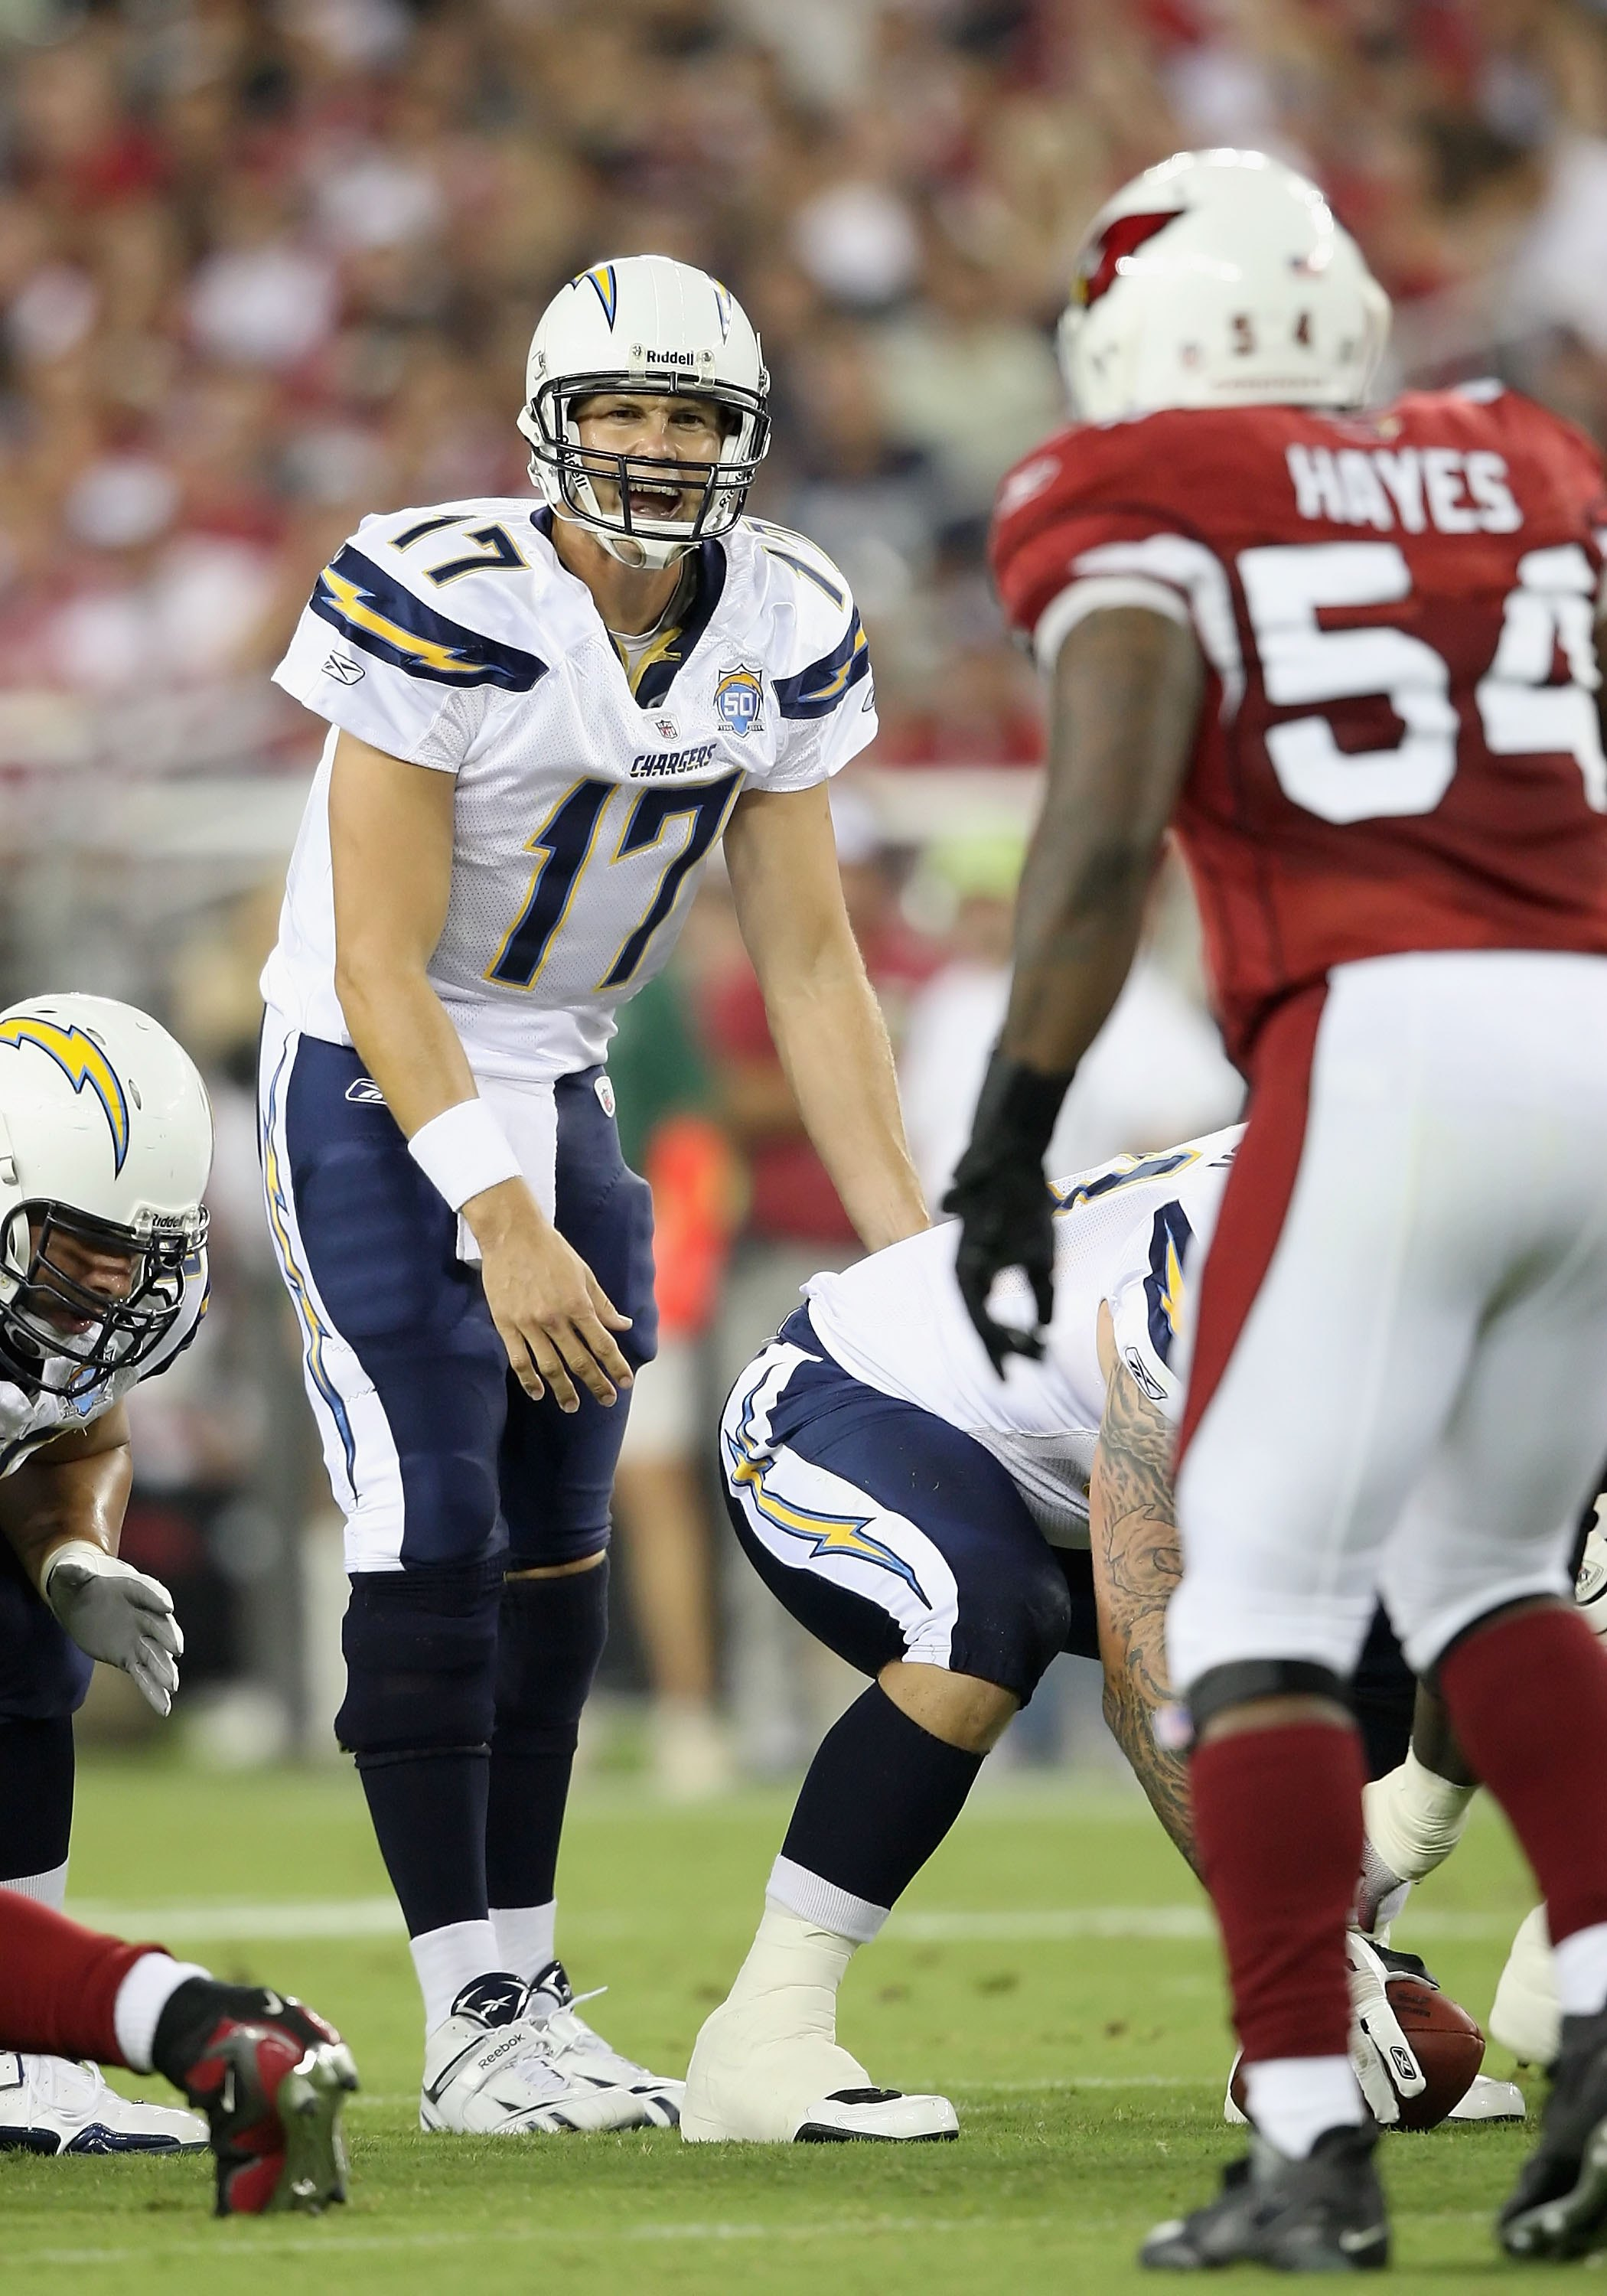 GLENDALE, AZ - AUGUST 22:  Quarterback Philip Rivers #17 of the San Diego Chargers prepares to snap the ball during the NFL game against the Arizona Cardinals at the University of Phoenix Stadium on August 22, 2009 in Glendale, Arizona. The Chargers defea